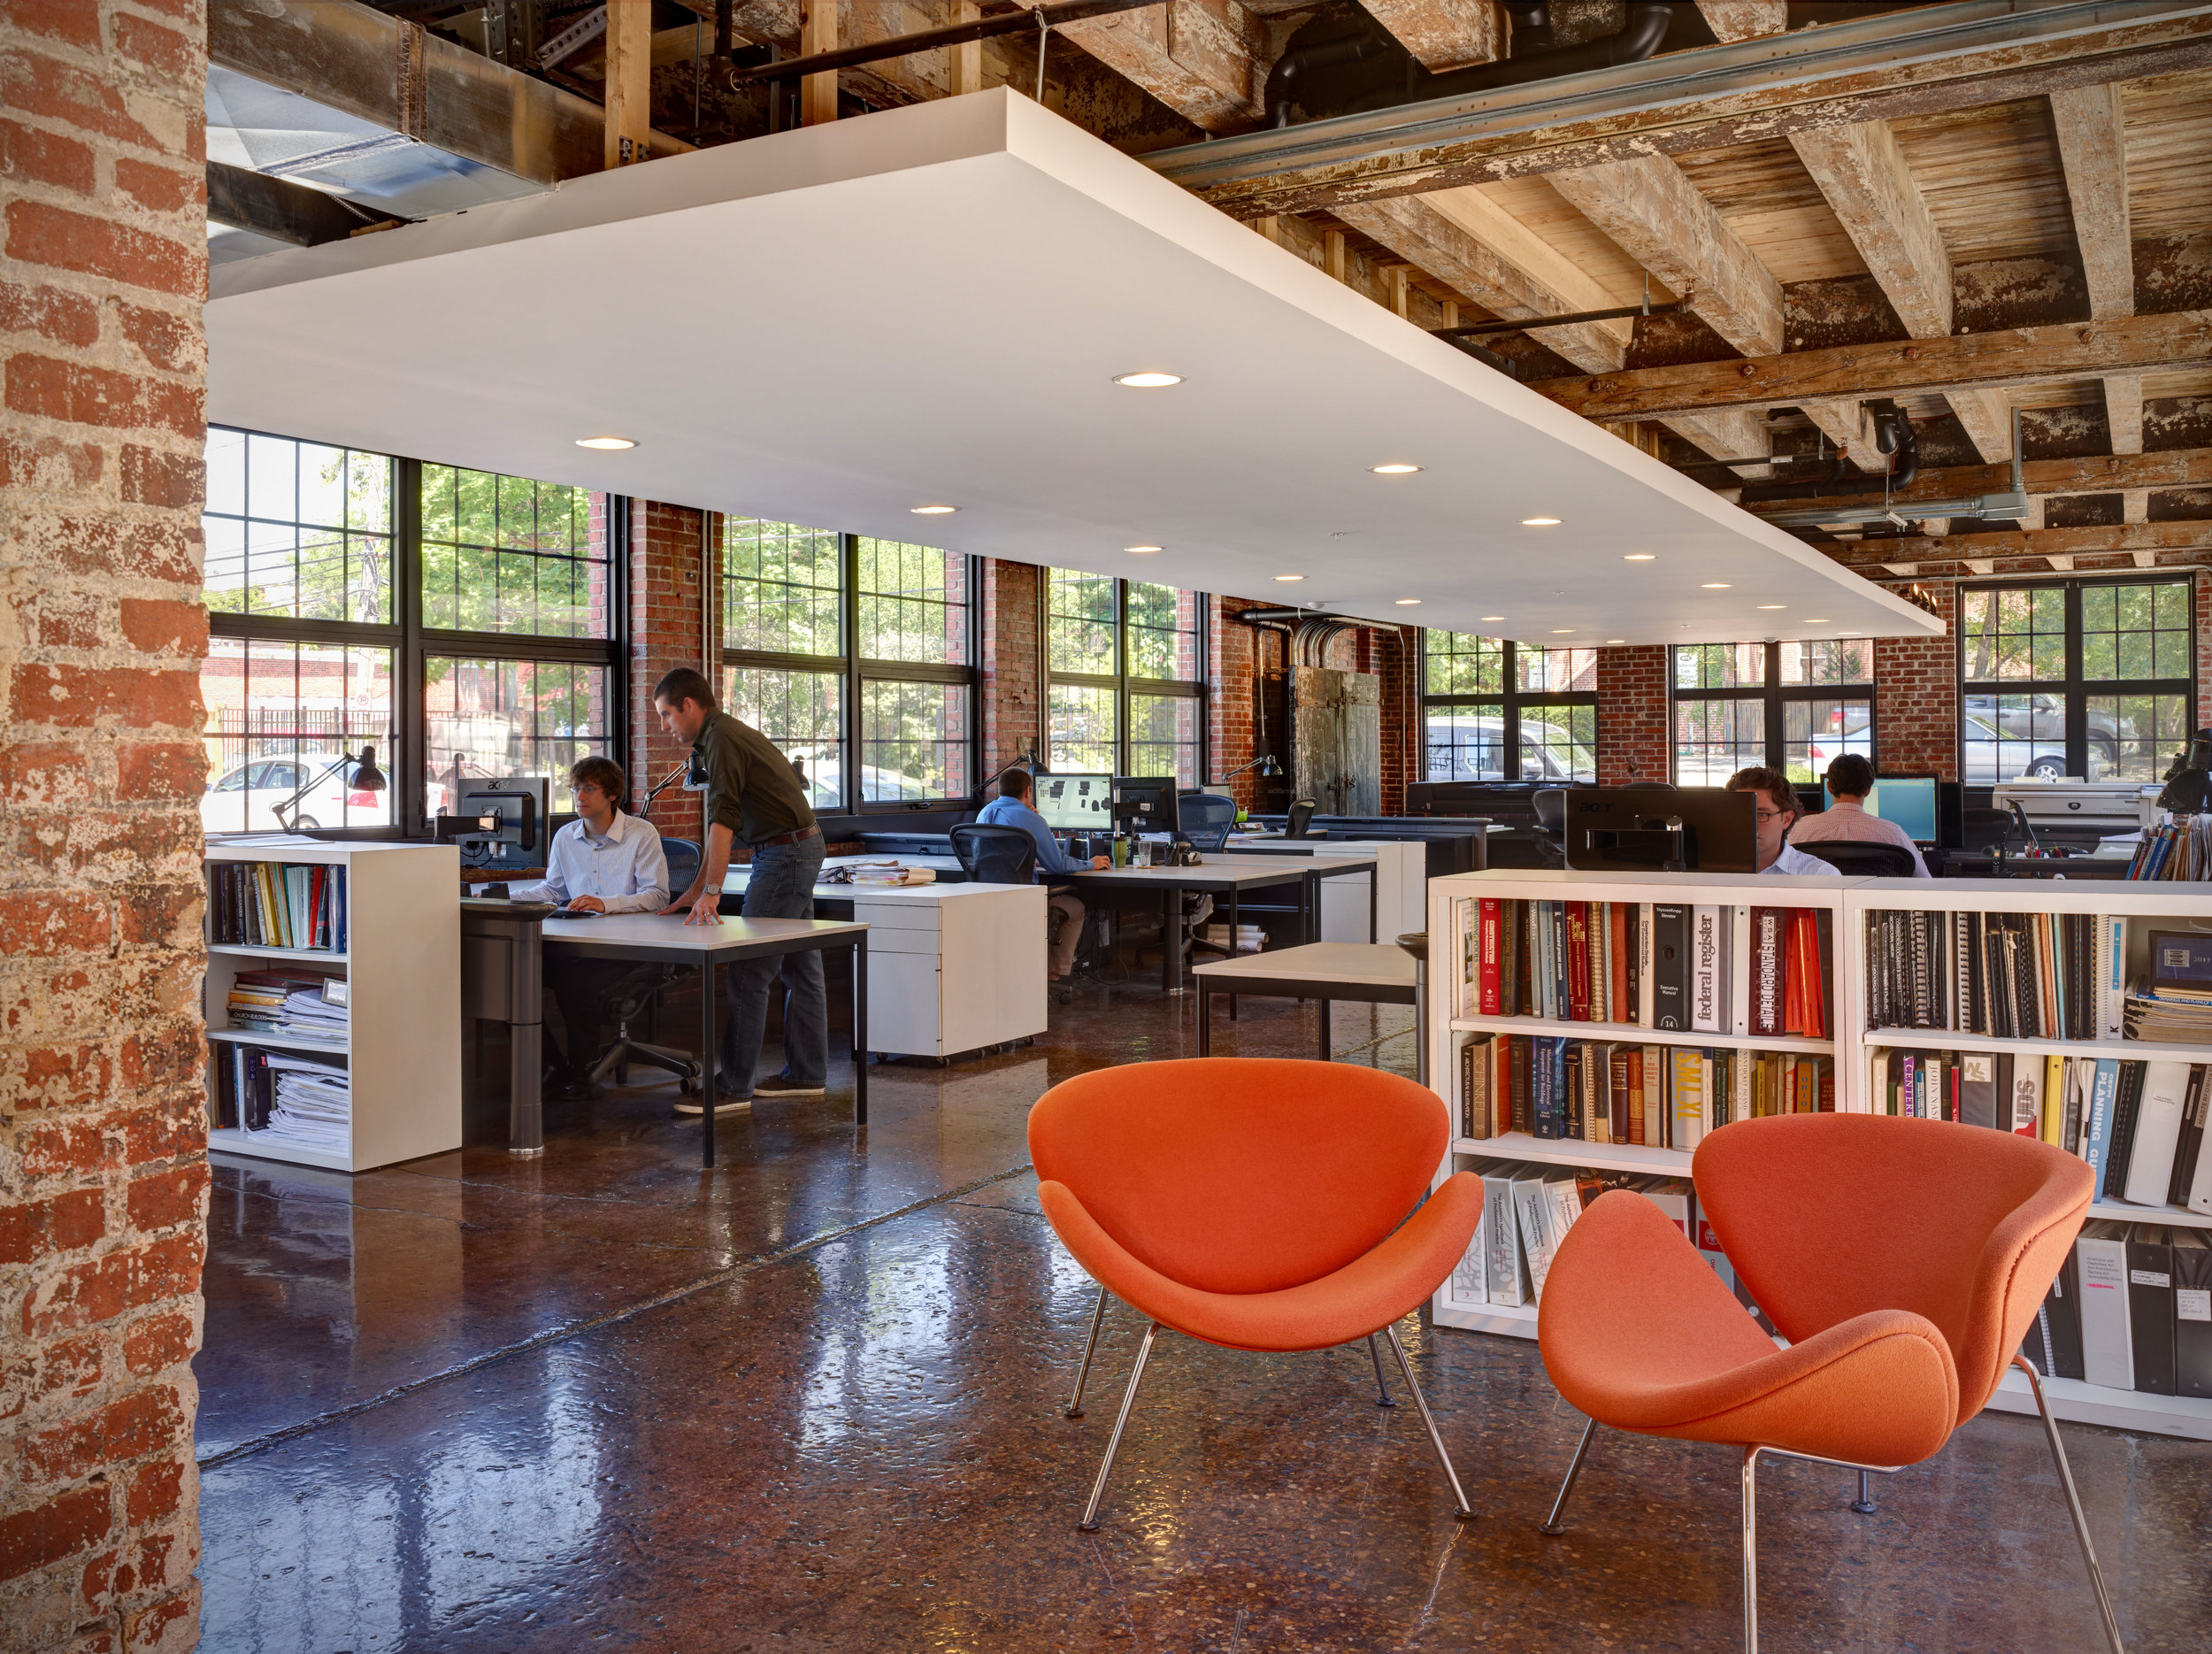 Large windows surround the workspaces at the WSA Studio office.